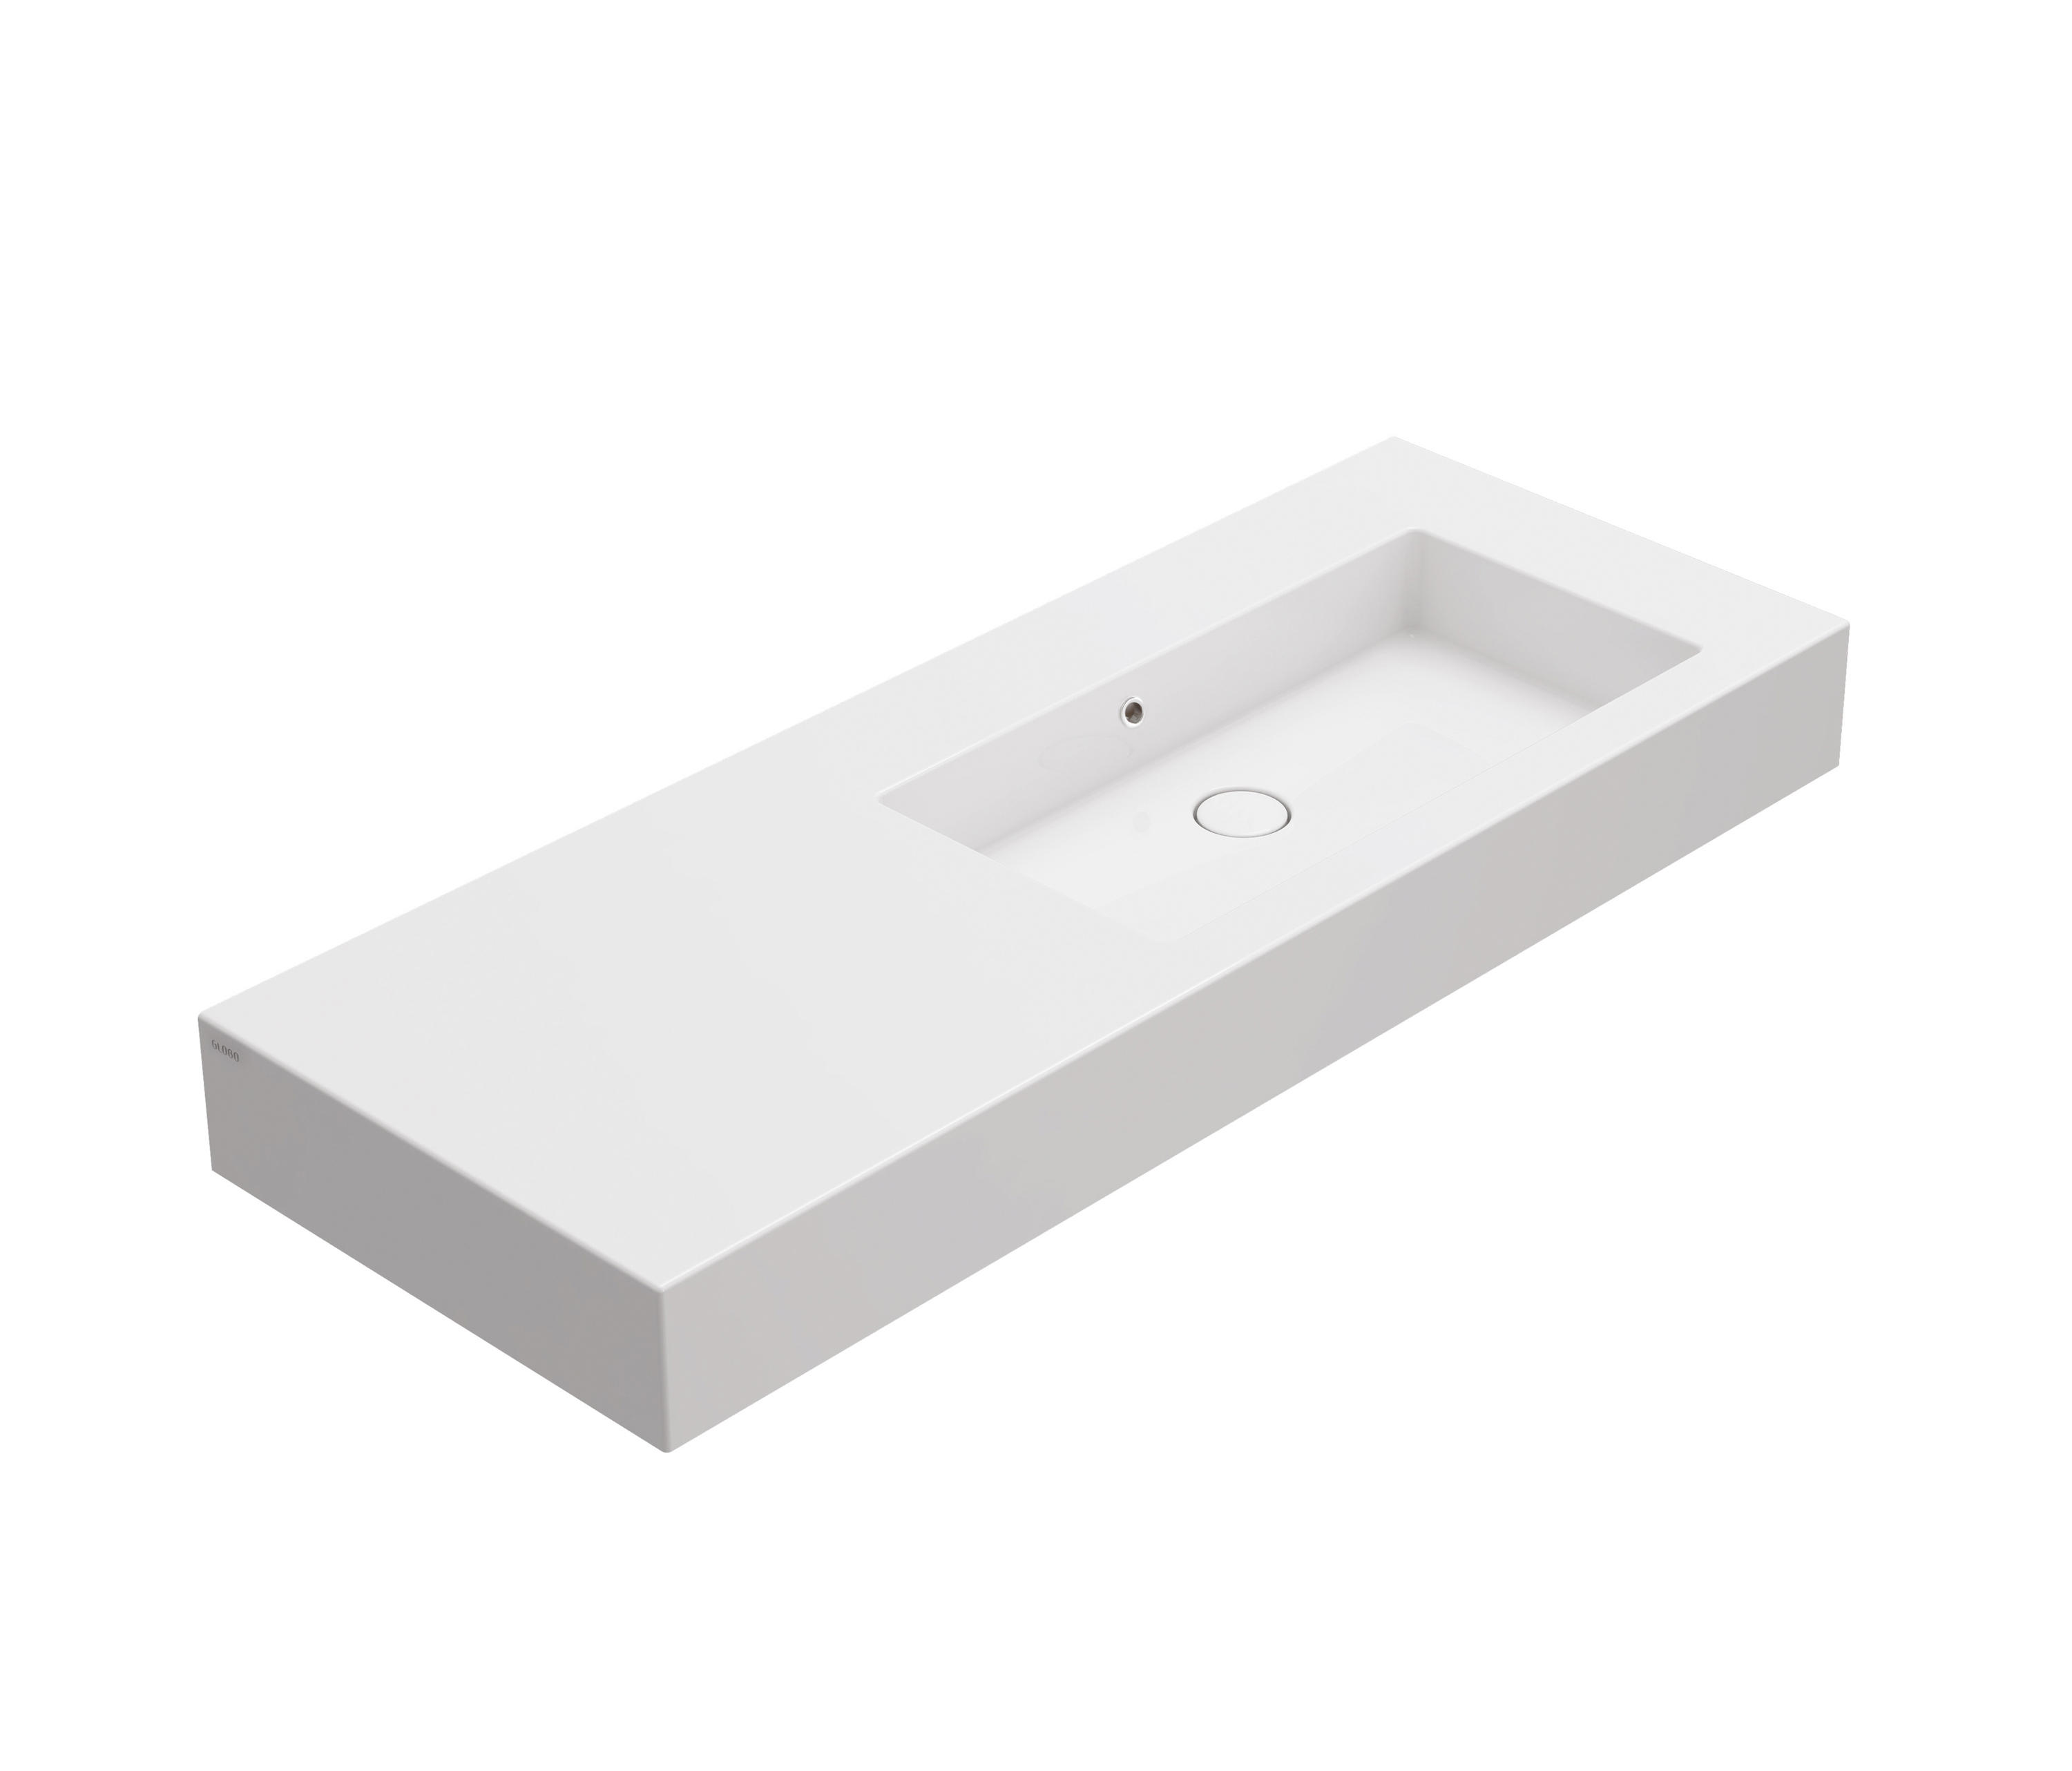 Globo Waschtisch incantho basin 136 wash basins from globo architonic